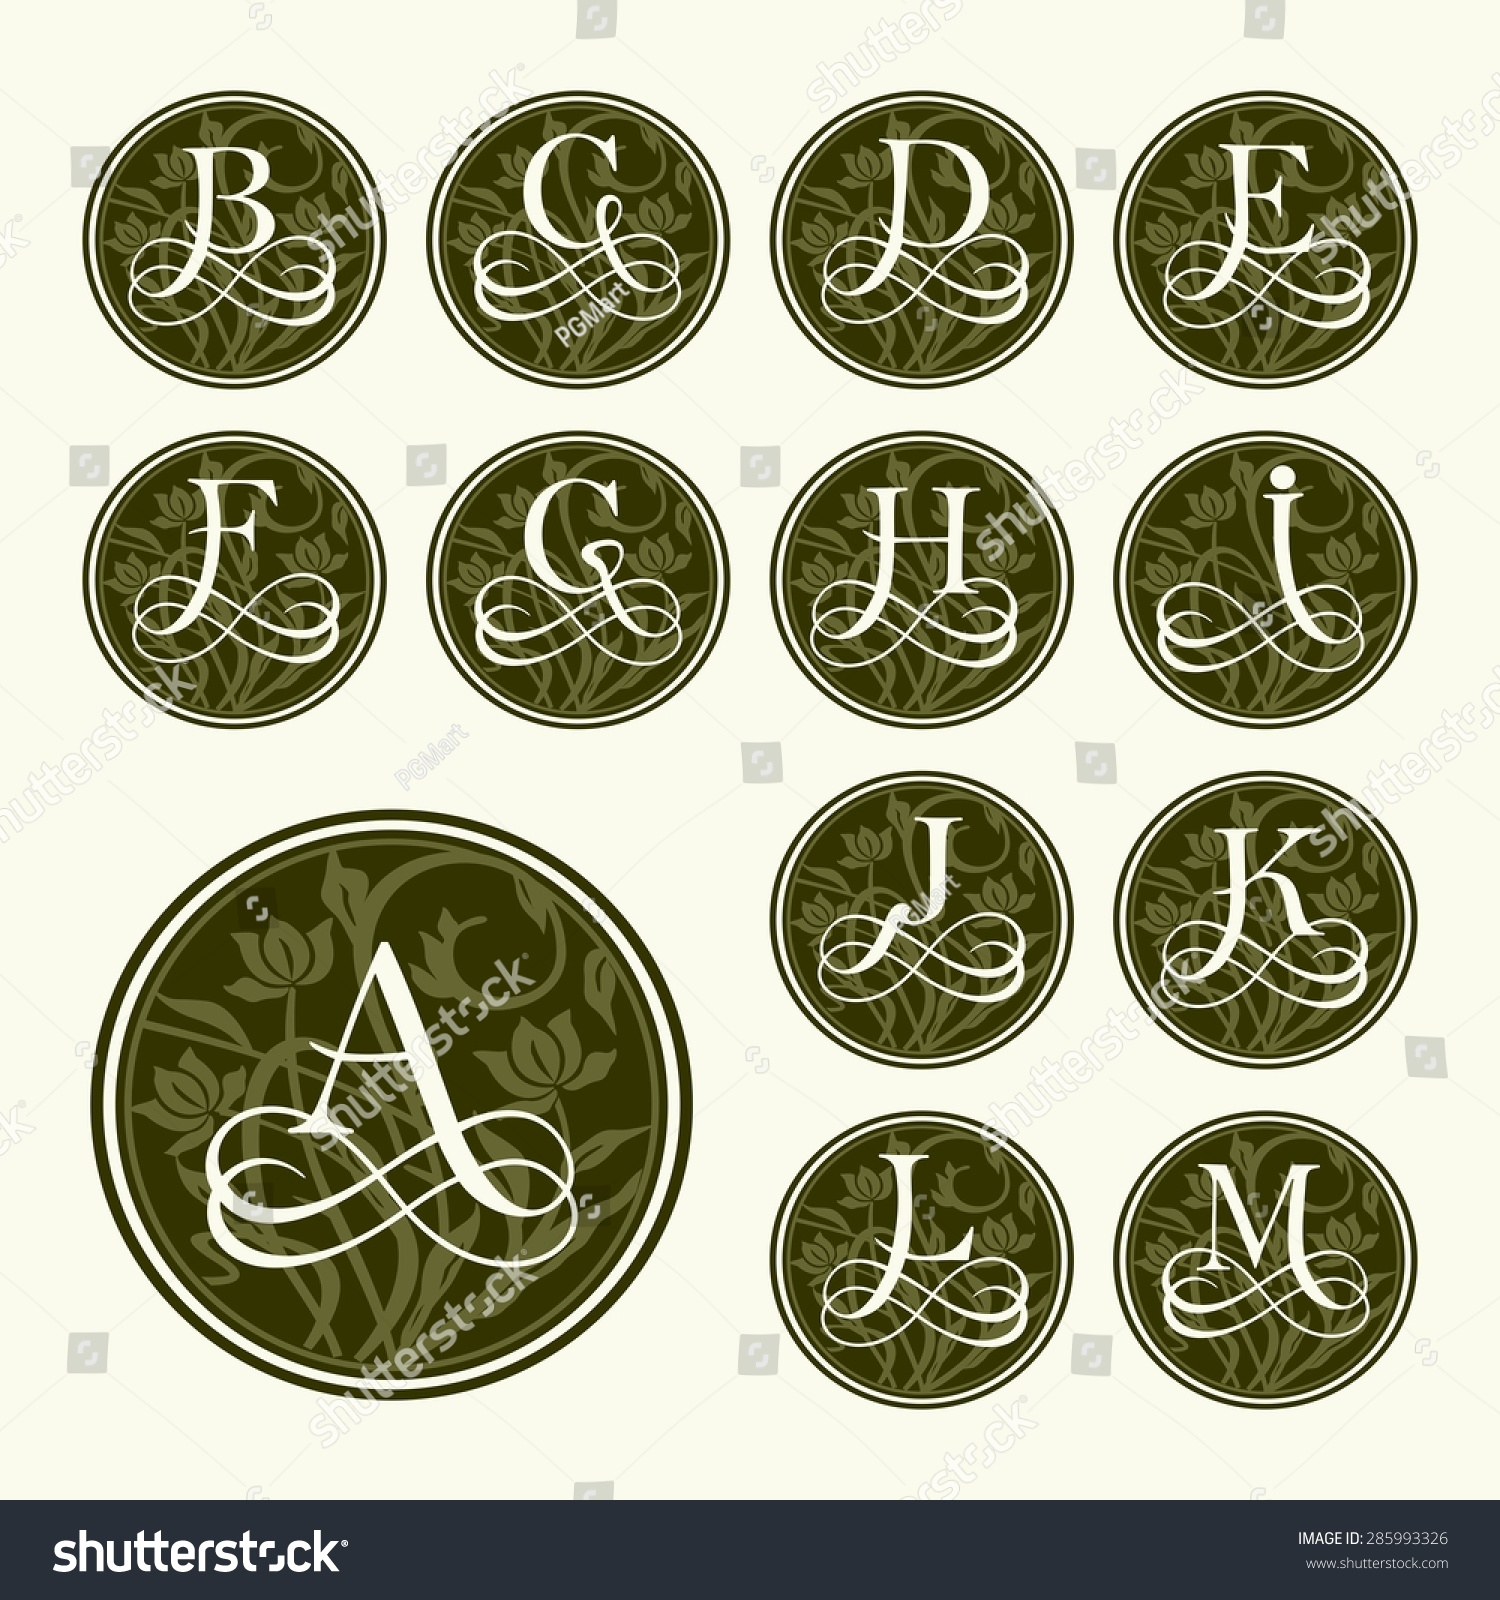 vintage set capital letters floral monograms and beautiful filigree font art deco nouveau